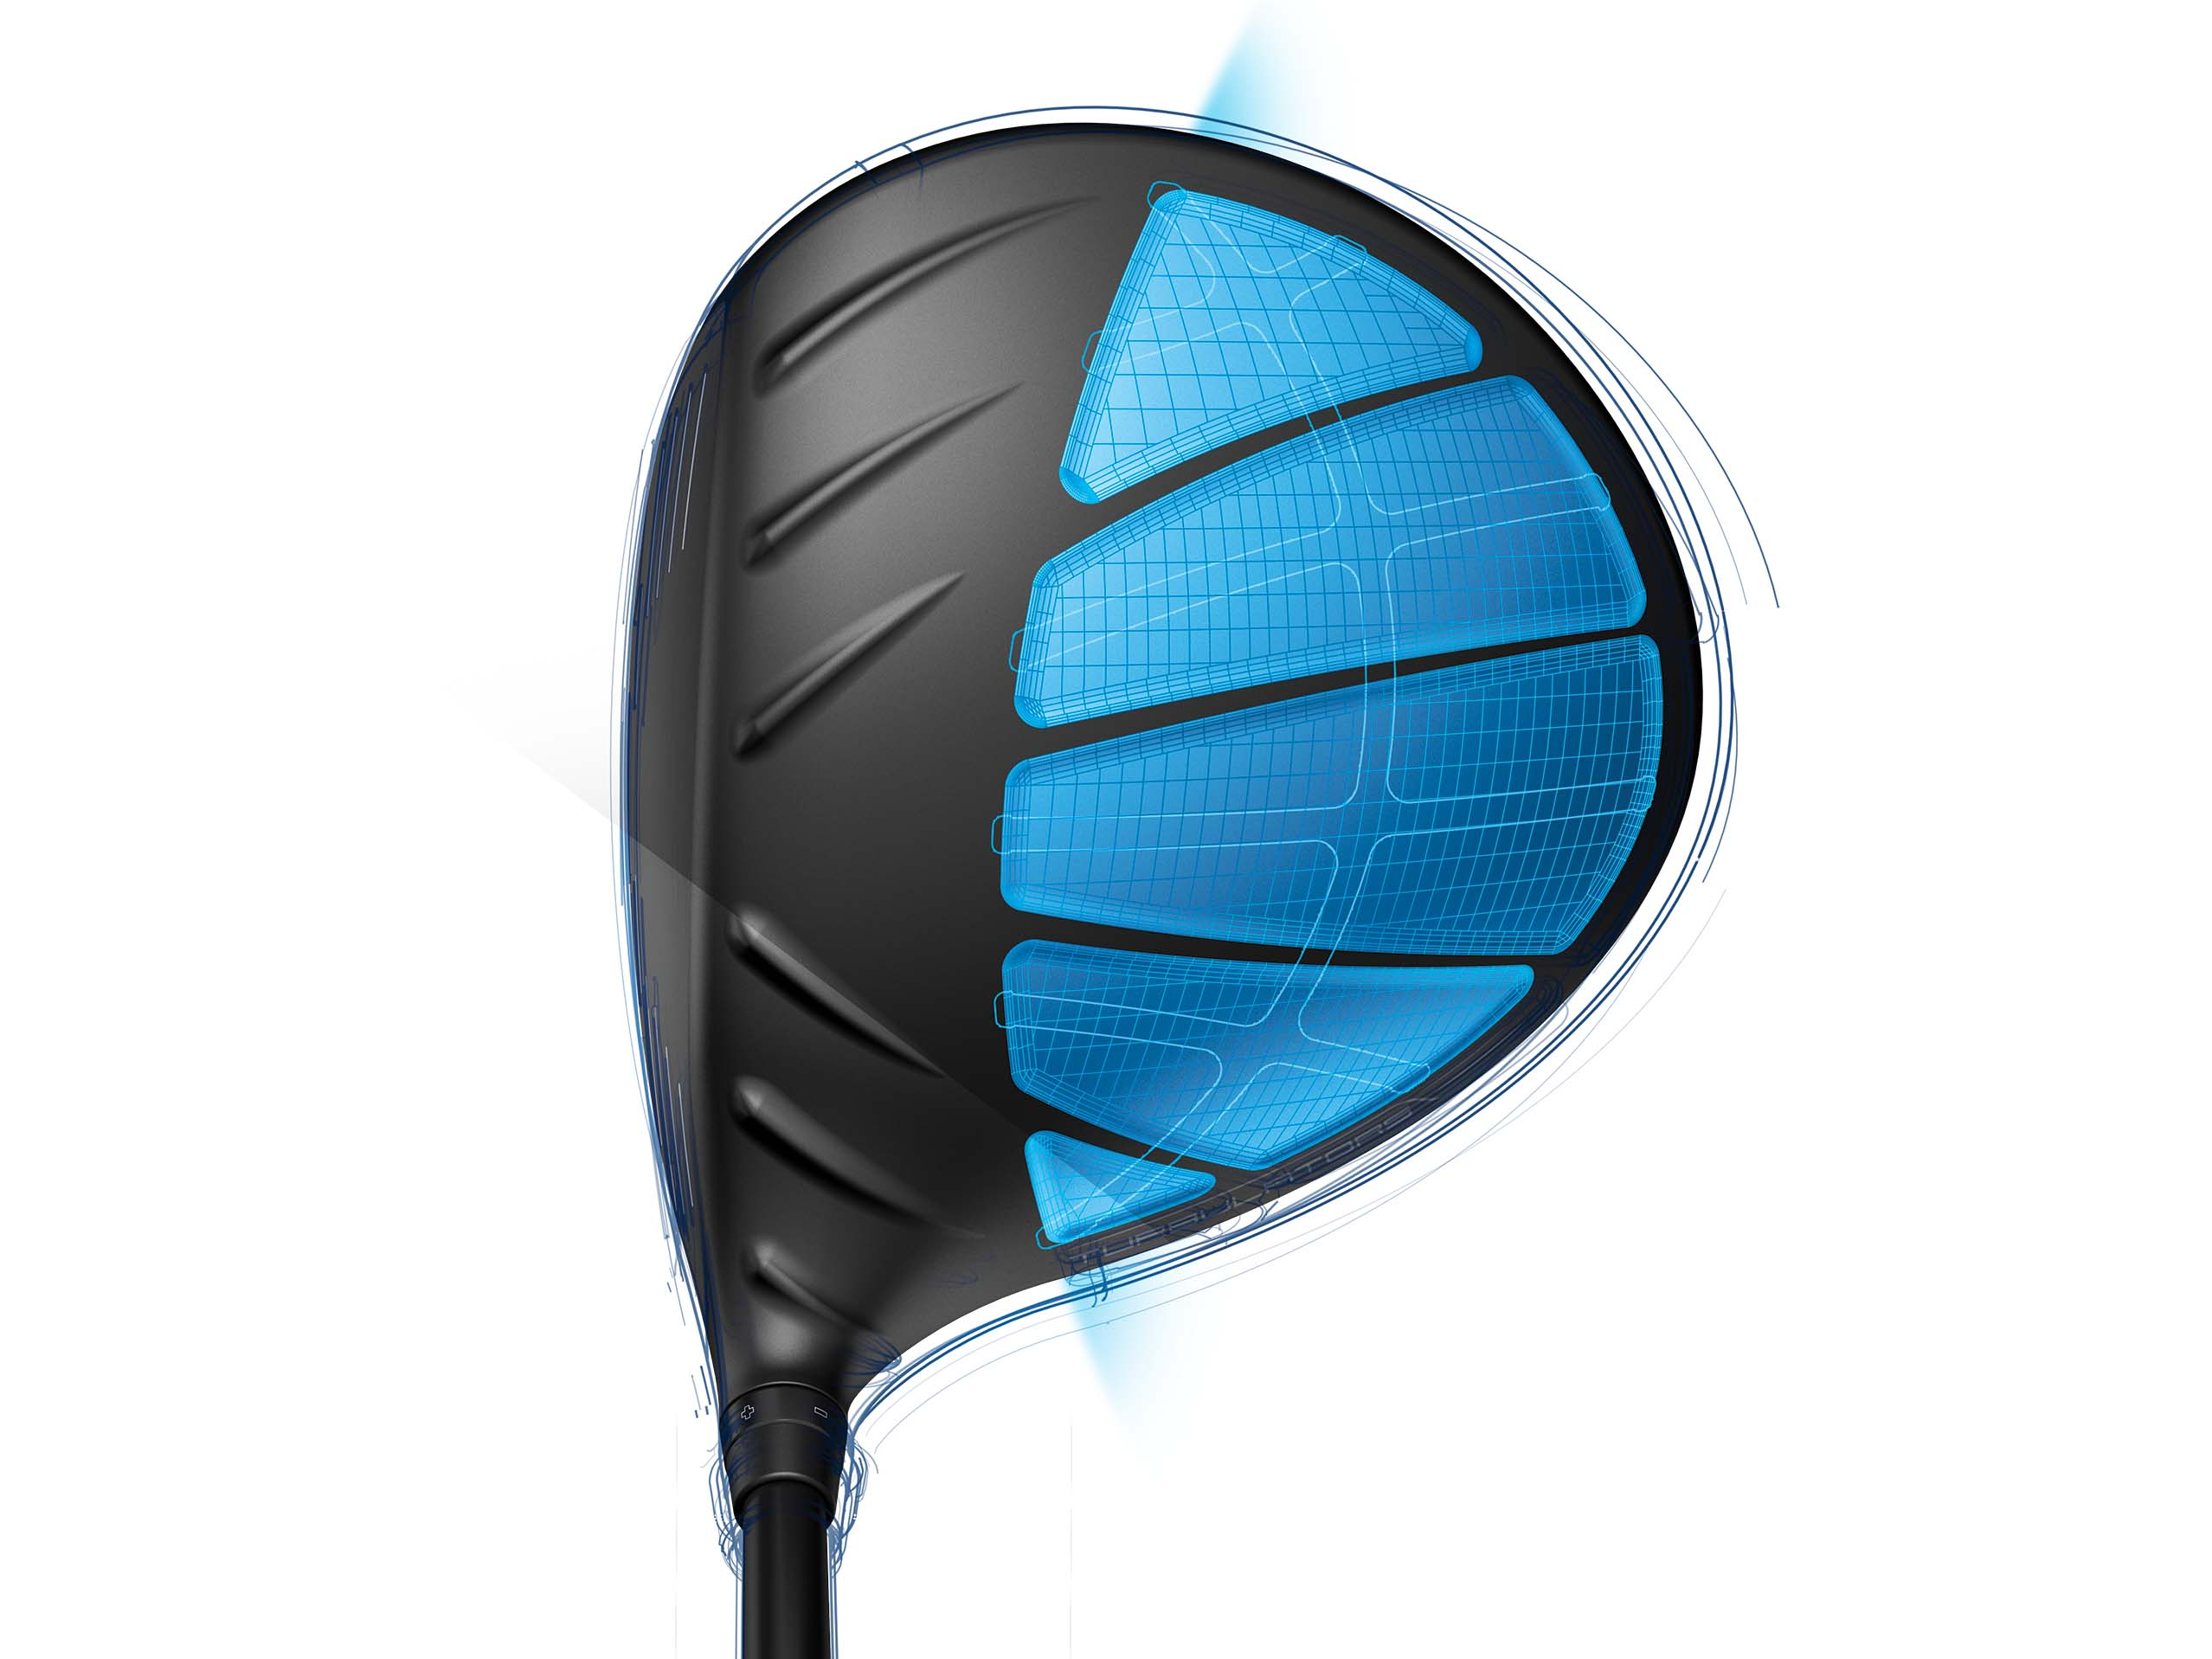 Ping g series drivers ping g series irons ping g series woods golf - Ping G Driver Dragon Fly Crown